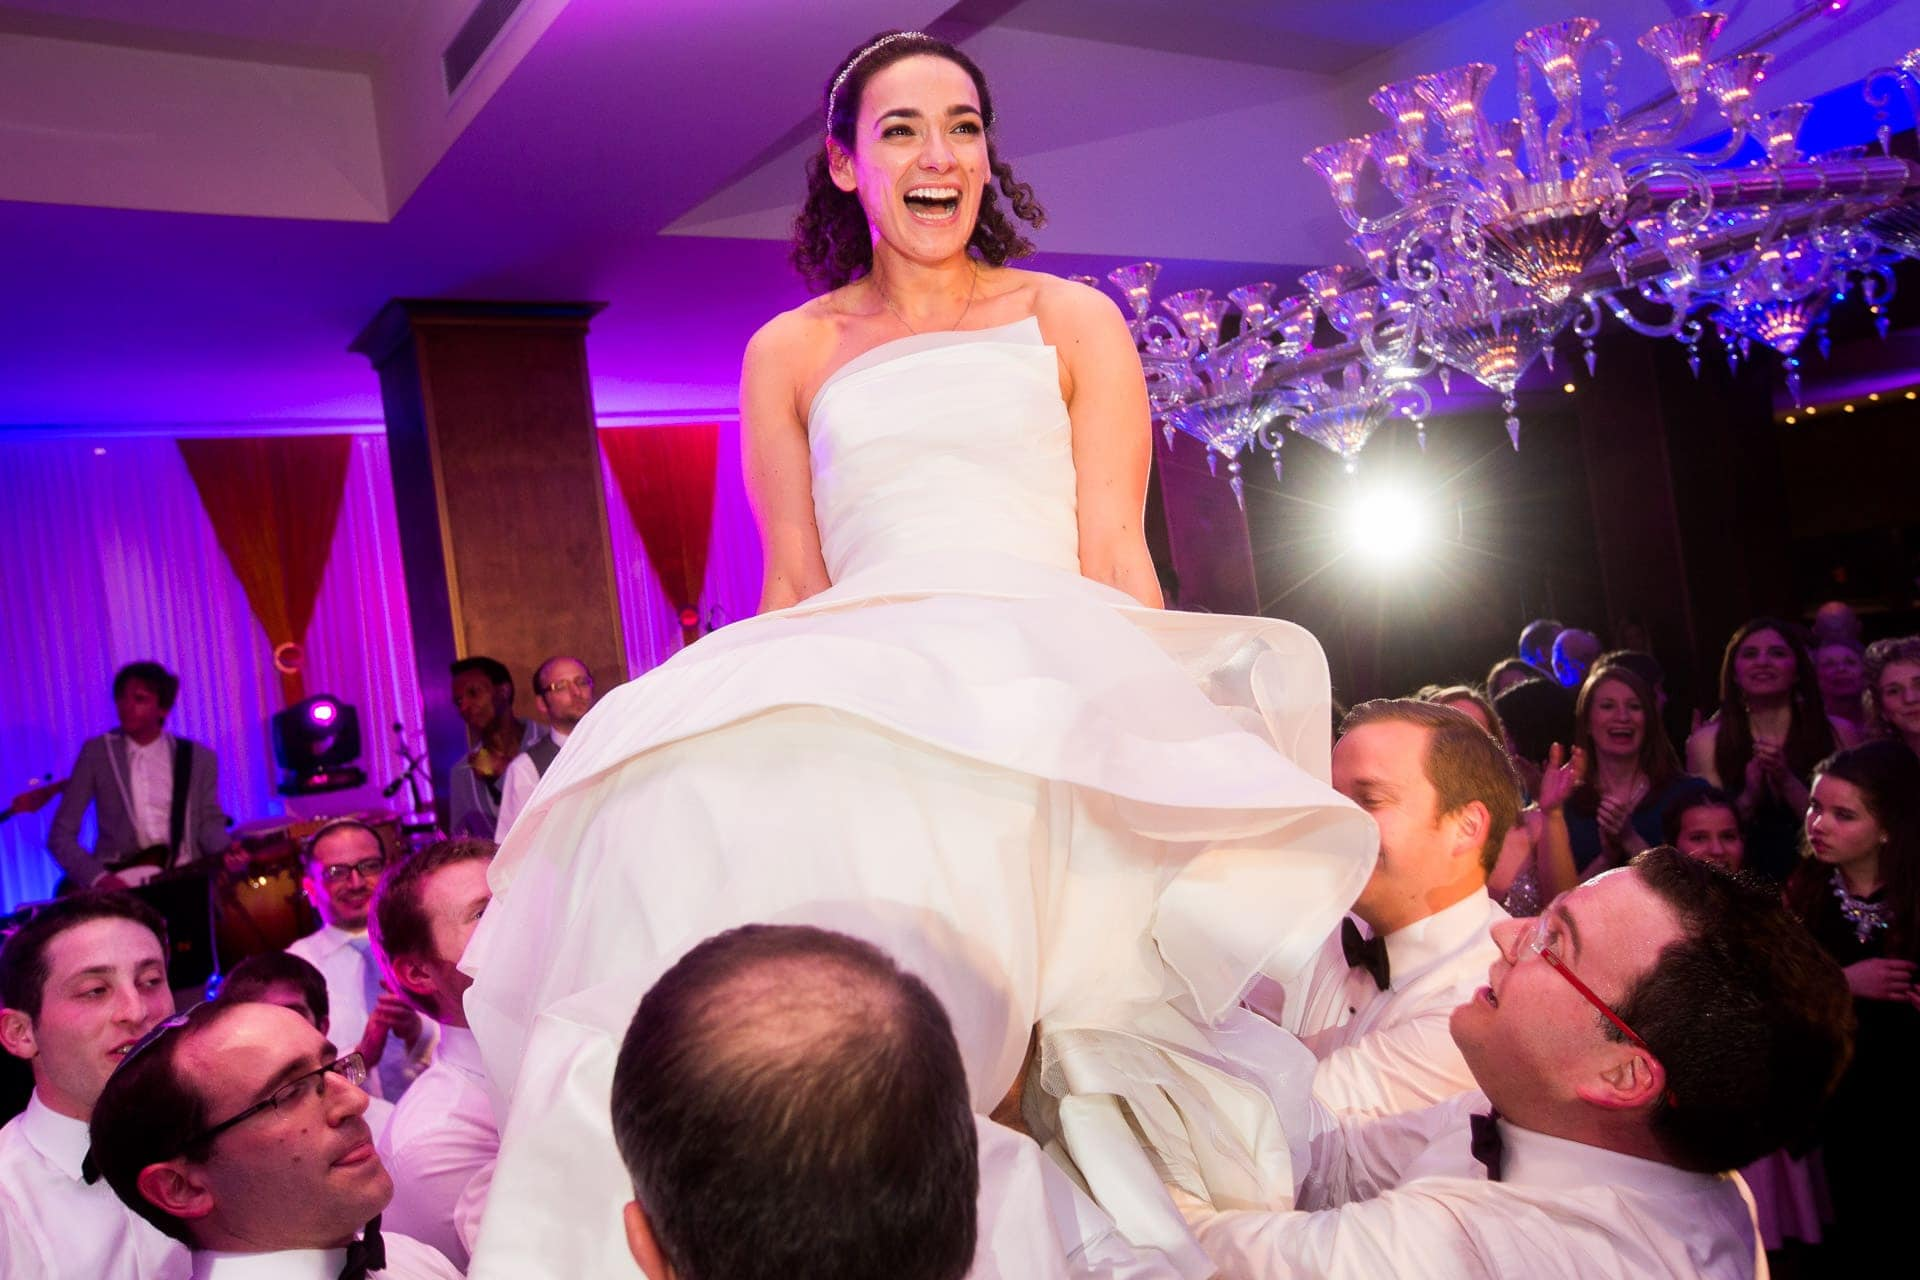 Jewish bride up on a chair